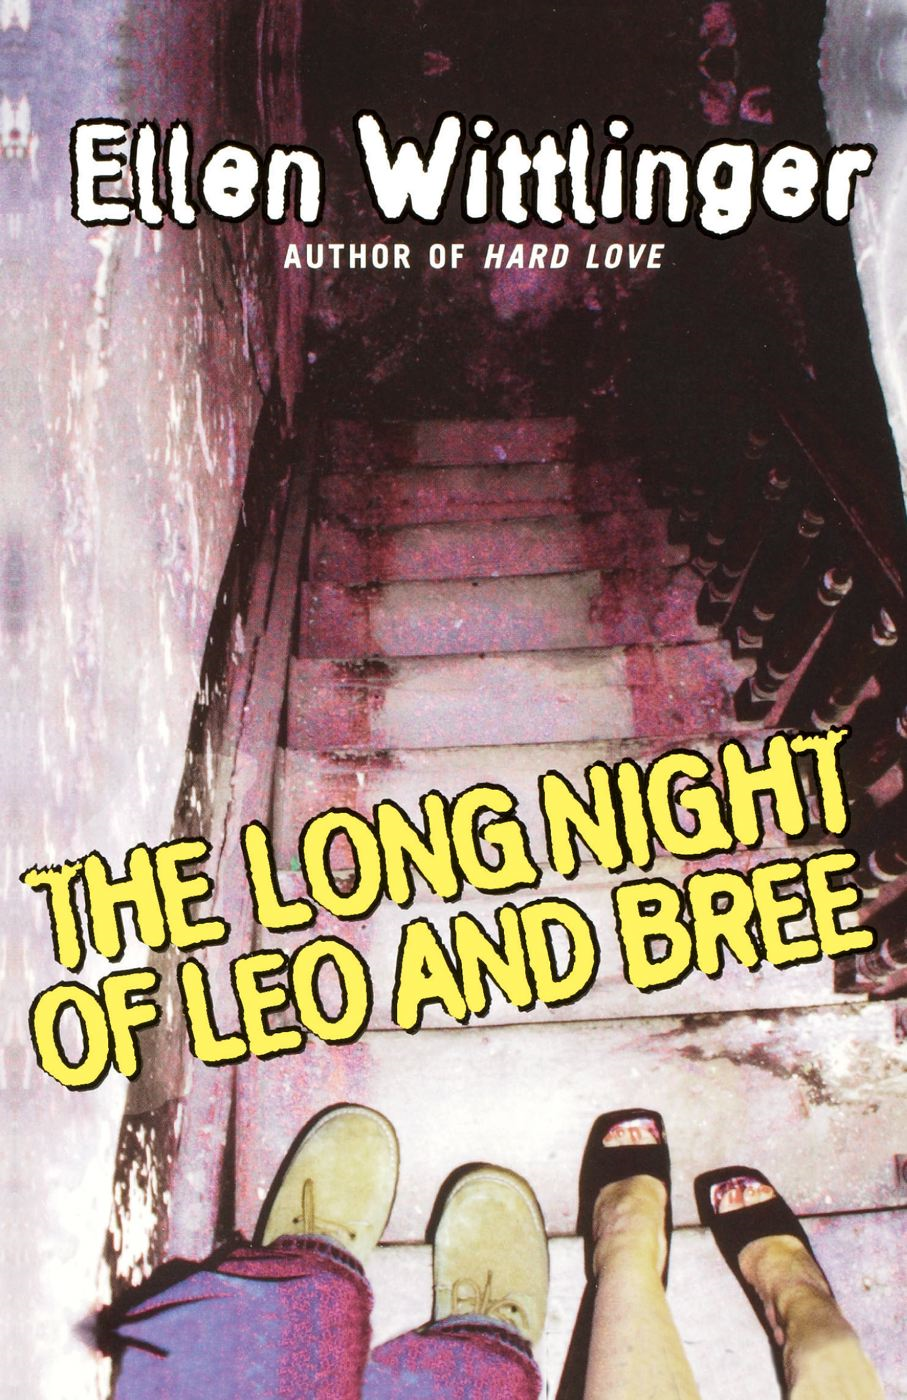 The Long Night of Leo and Bree By: Ellen Wittlinger